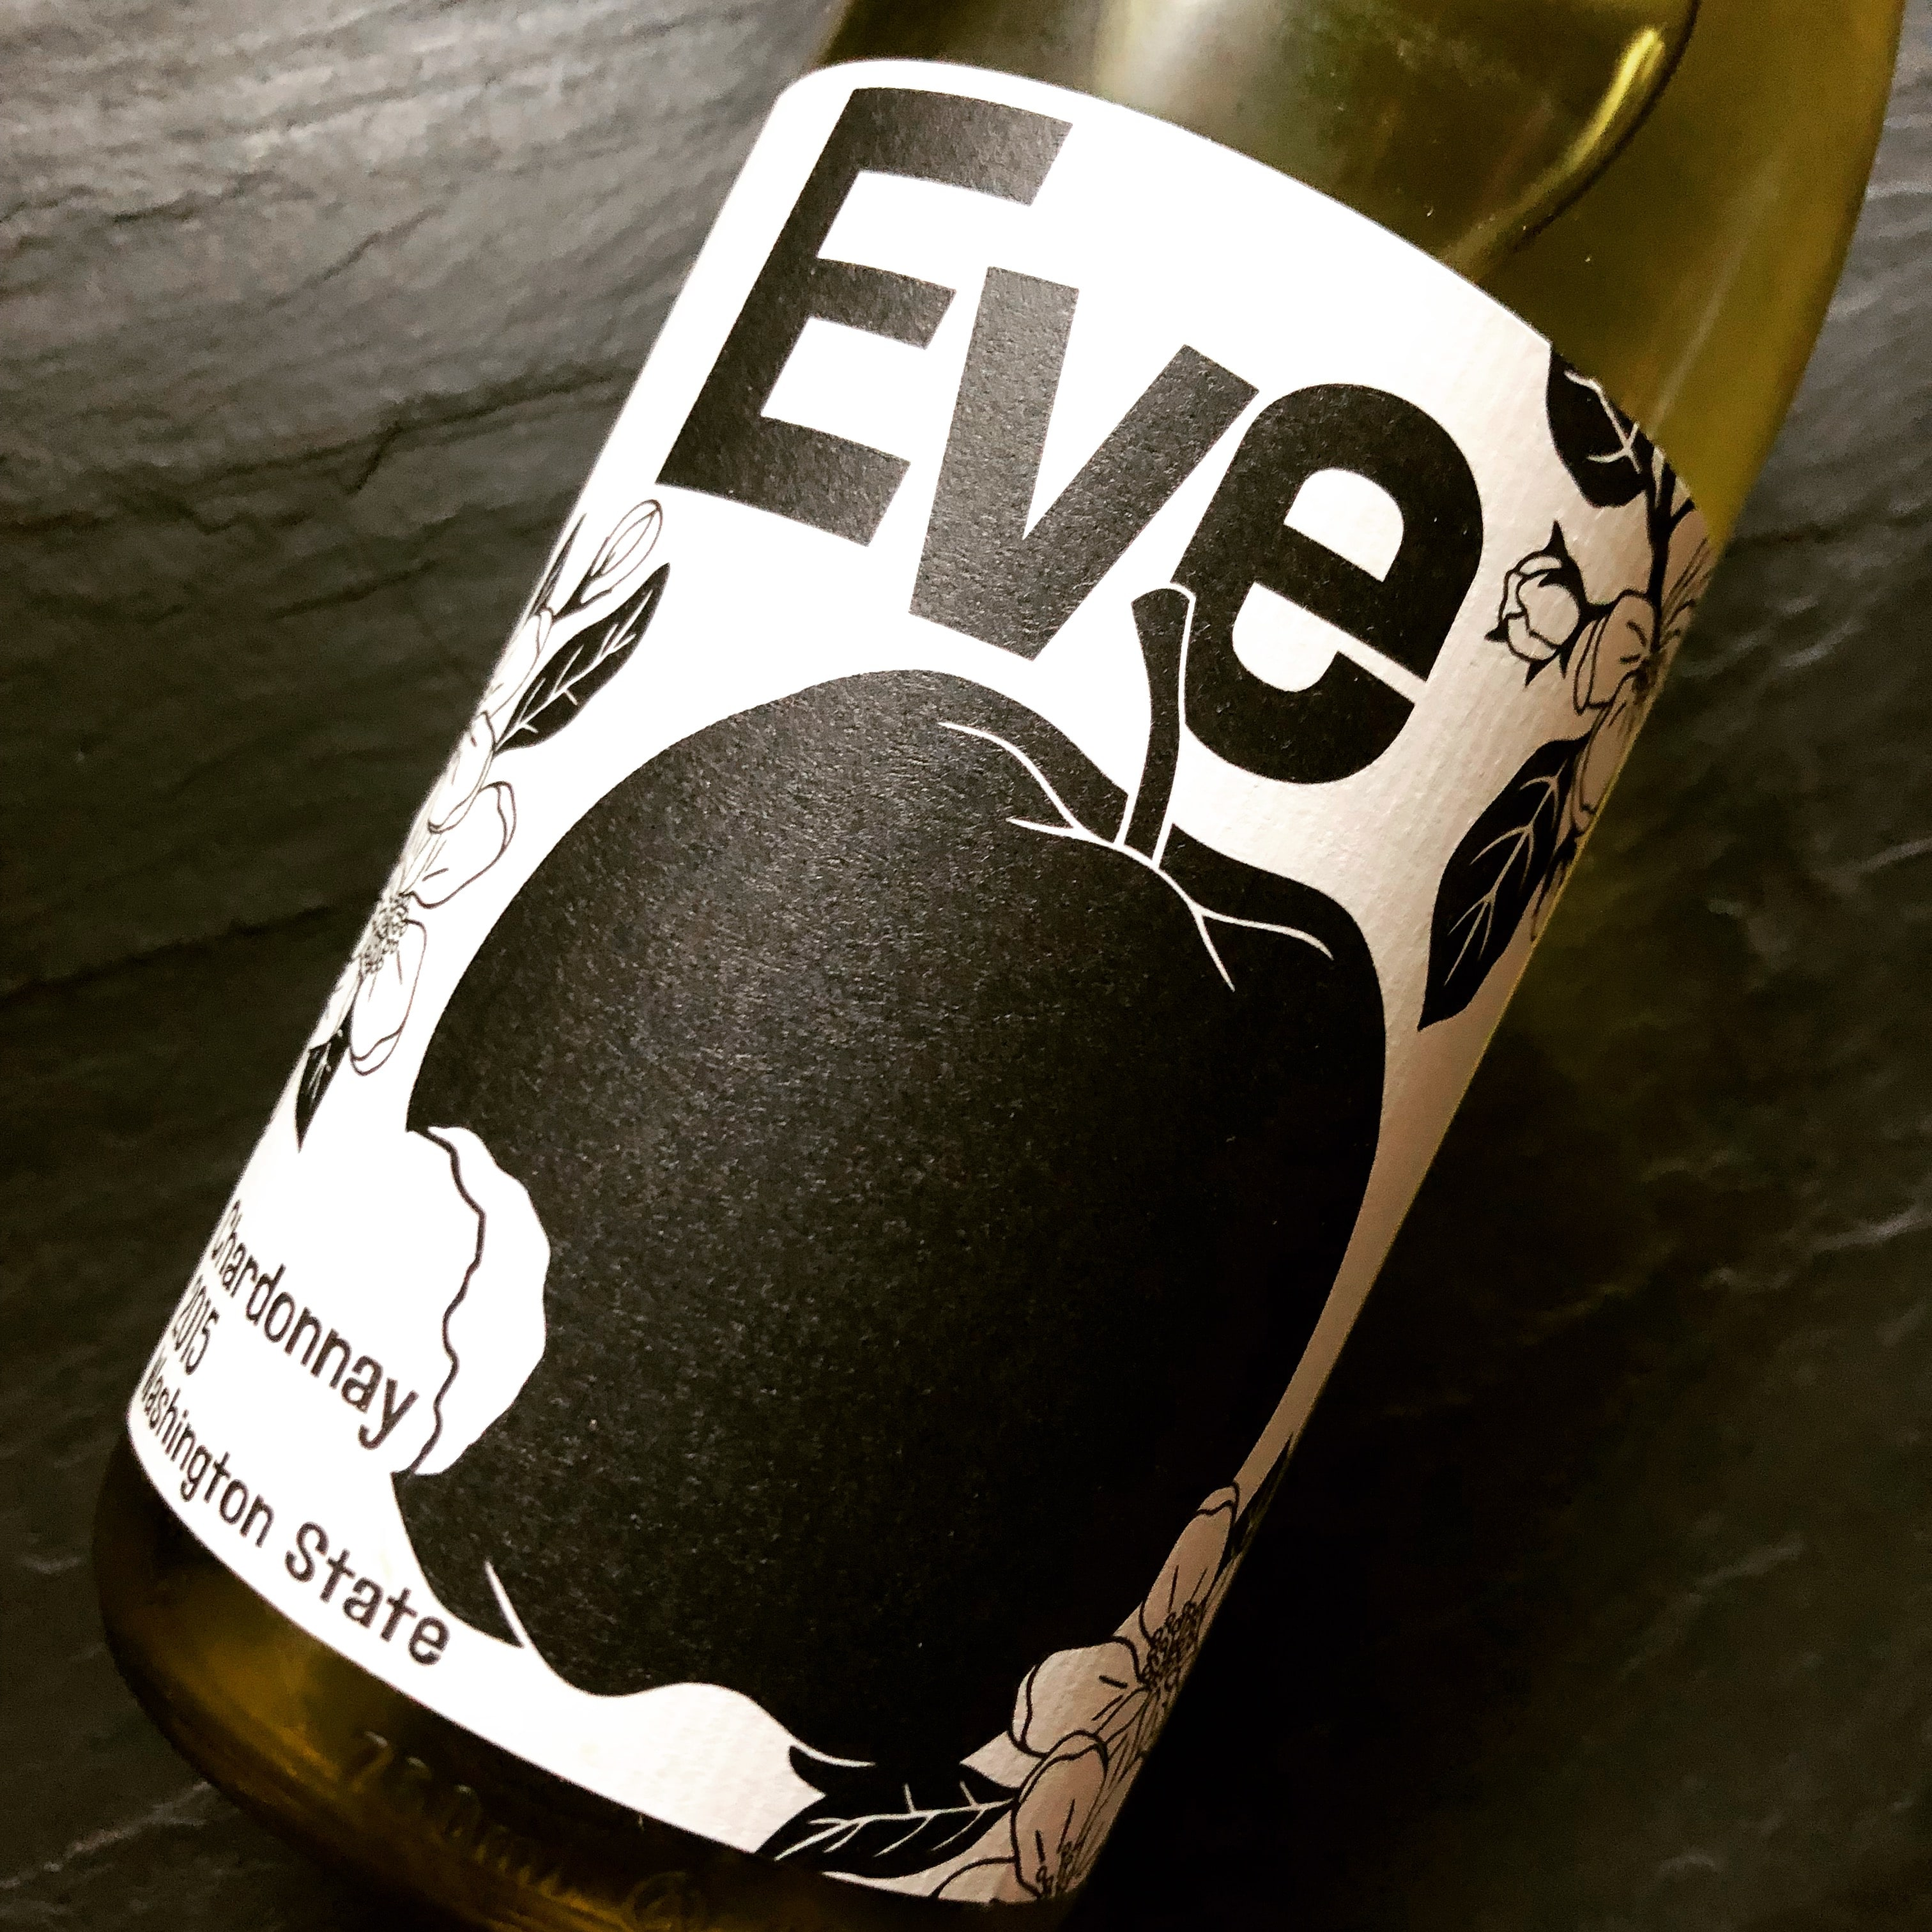 Charles Smith Eve Chardonnay 2015